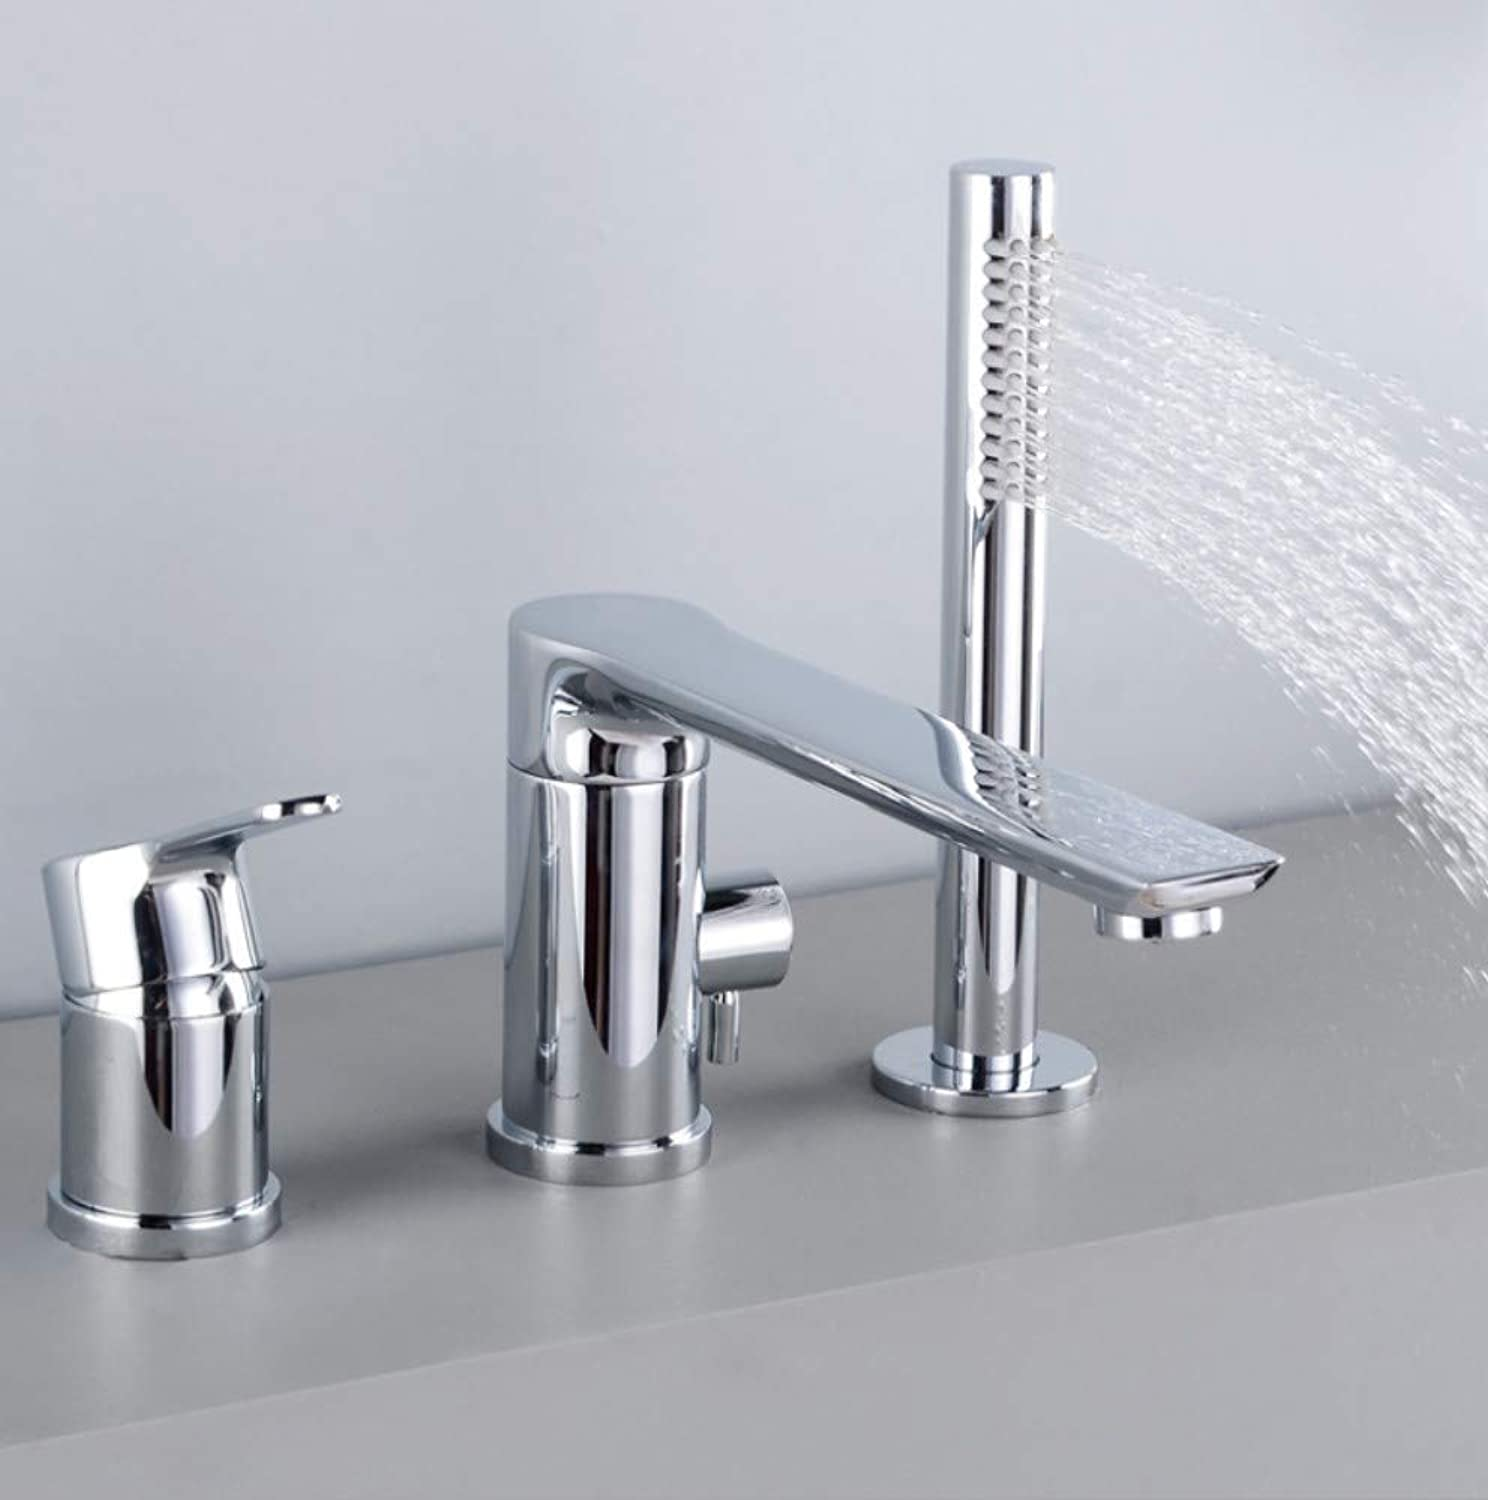 Bathroom Sink Basin Lever Mixer Tap Copper Concealed Three Or Four-Hole Basin Faucet Into The Wall Cold and Hot Water Faucet Concealed Platform Basin Faucet Bathtub Three Or Four Sets